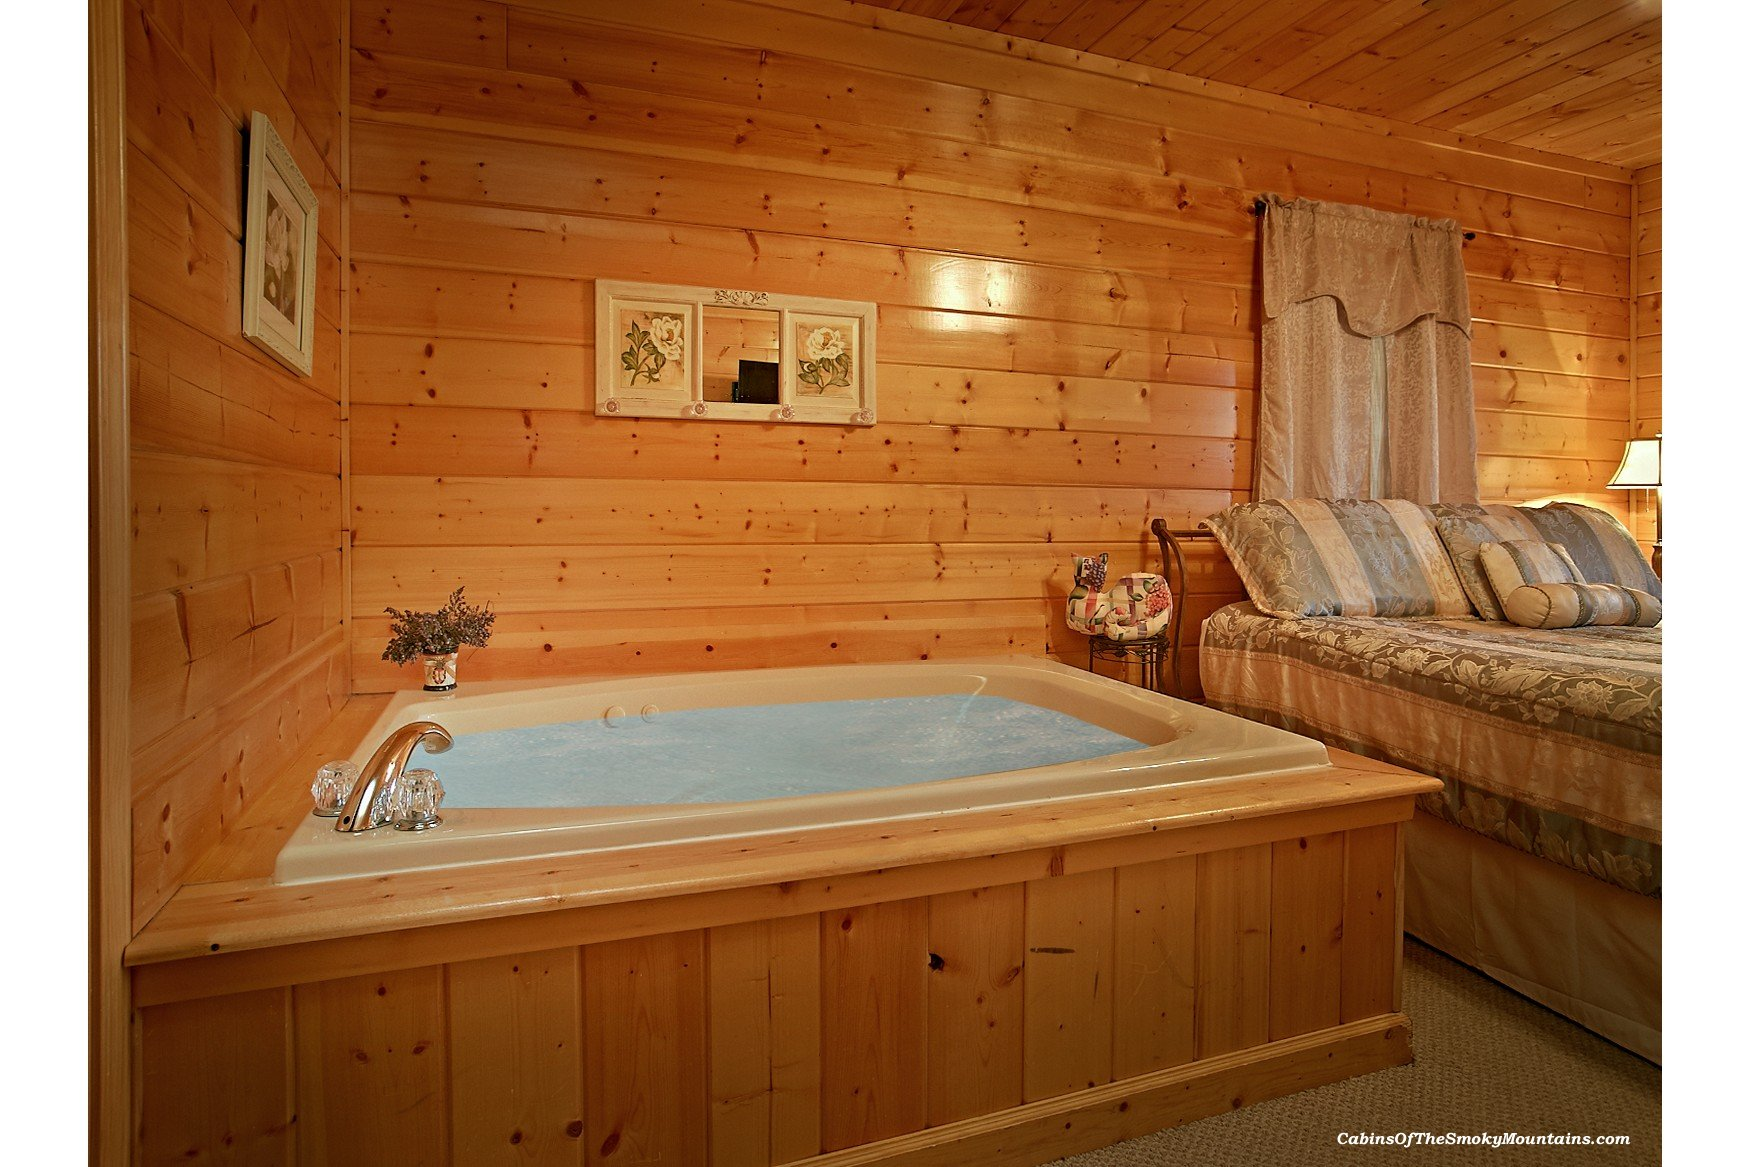 properties en cabins t luxury de bedrooms rentals rooms log meribel s rental our cabin les ref chalet propri allues